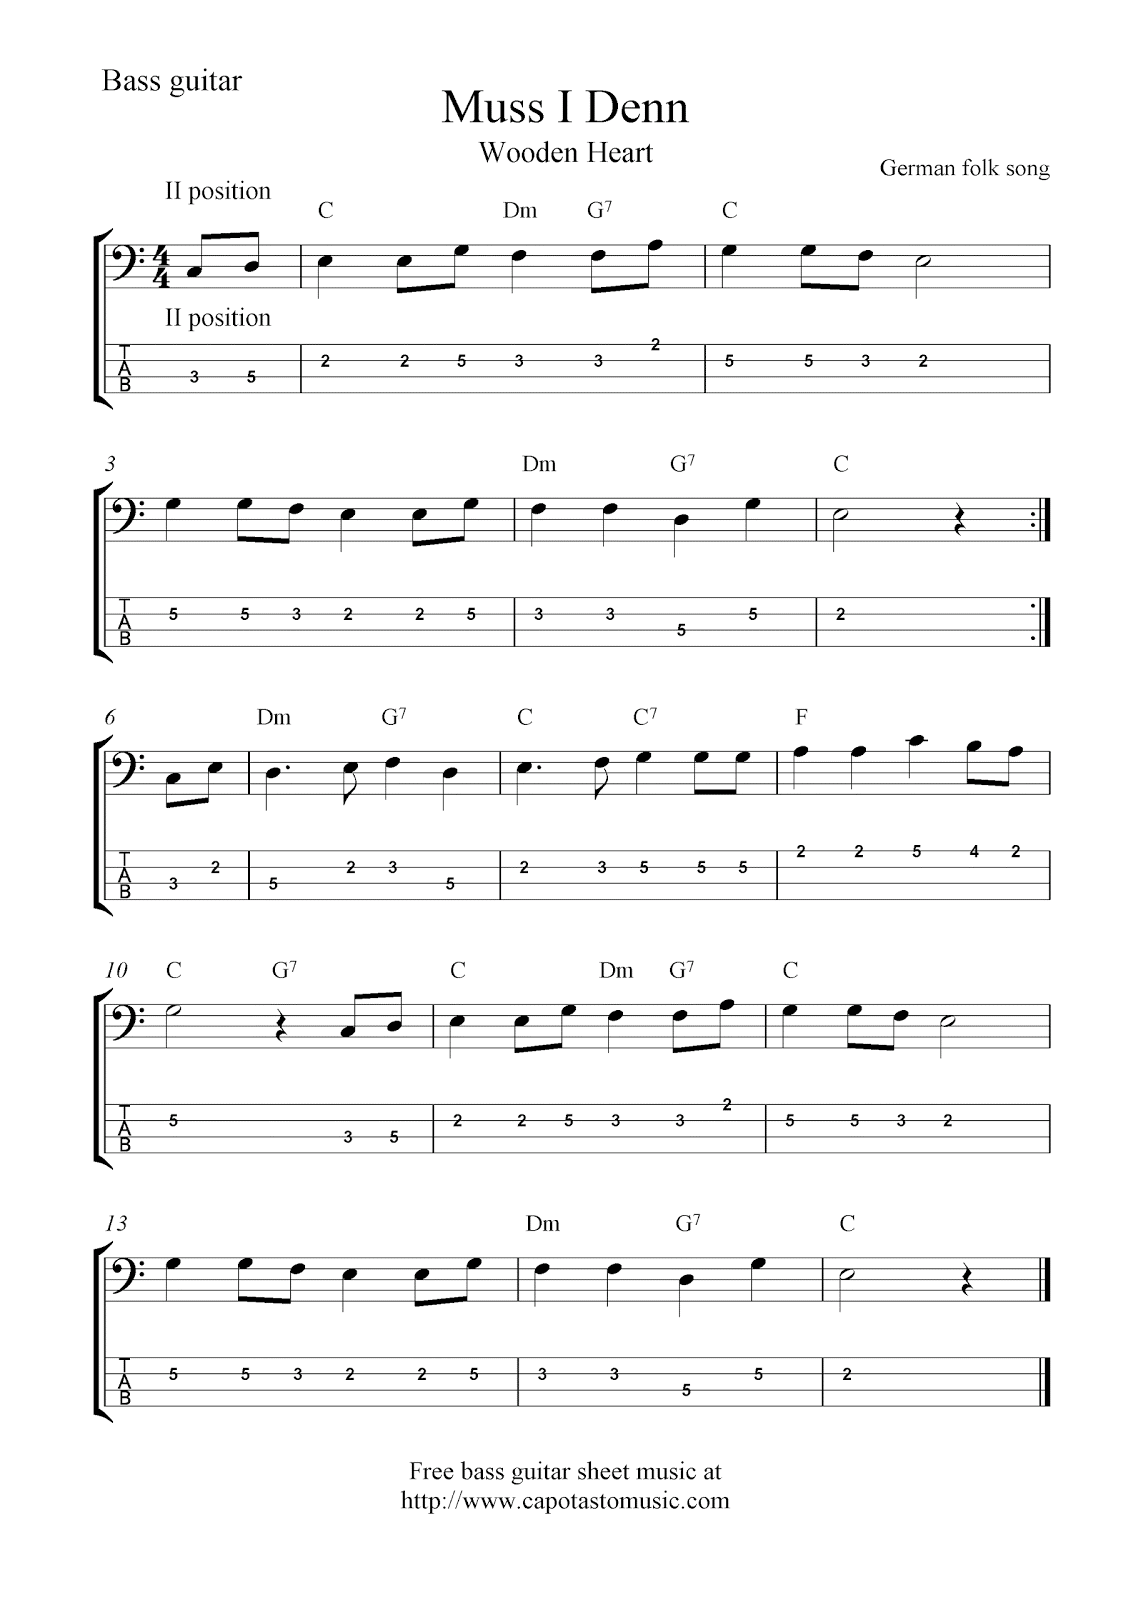 Free bass guitar tab sheet music, Muss I Denn (Wooden Heart)